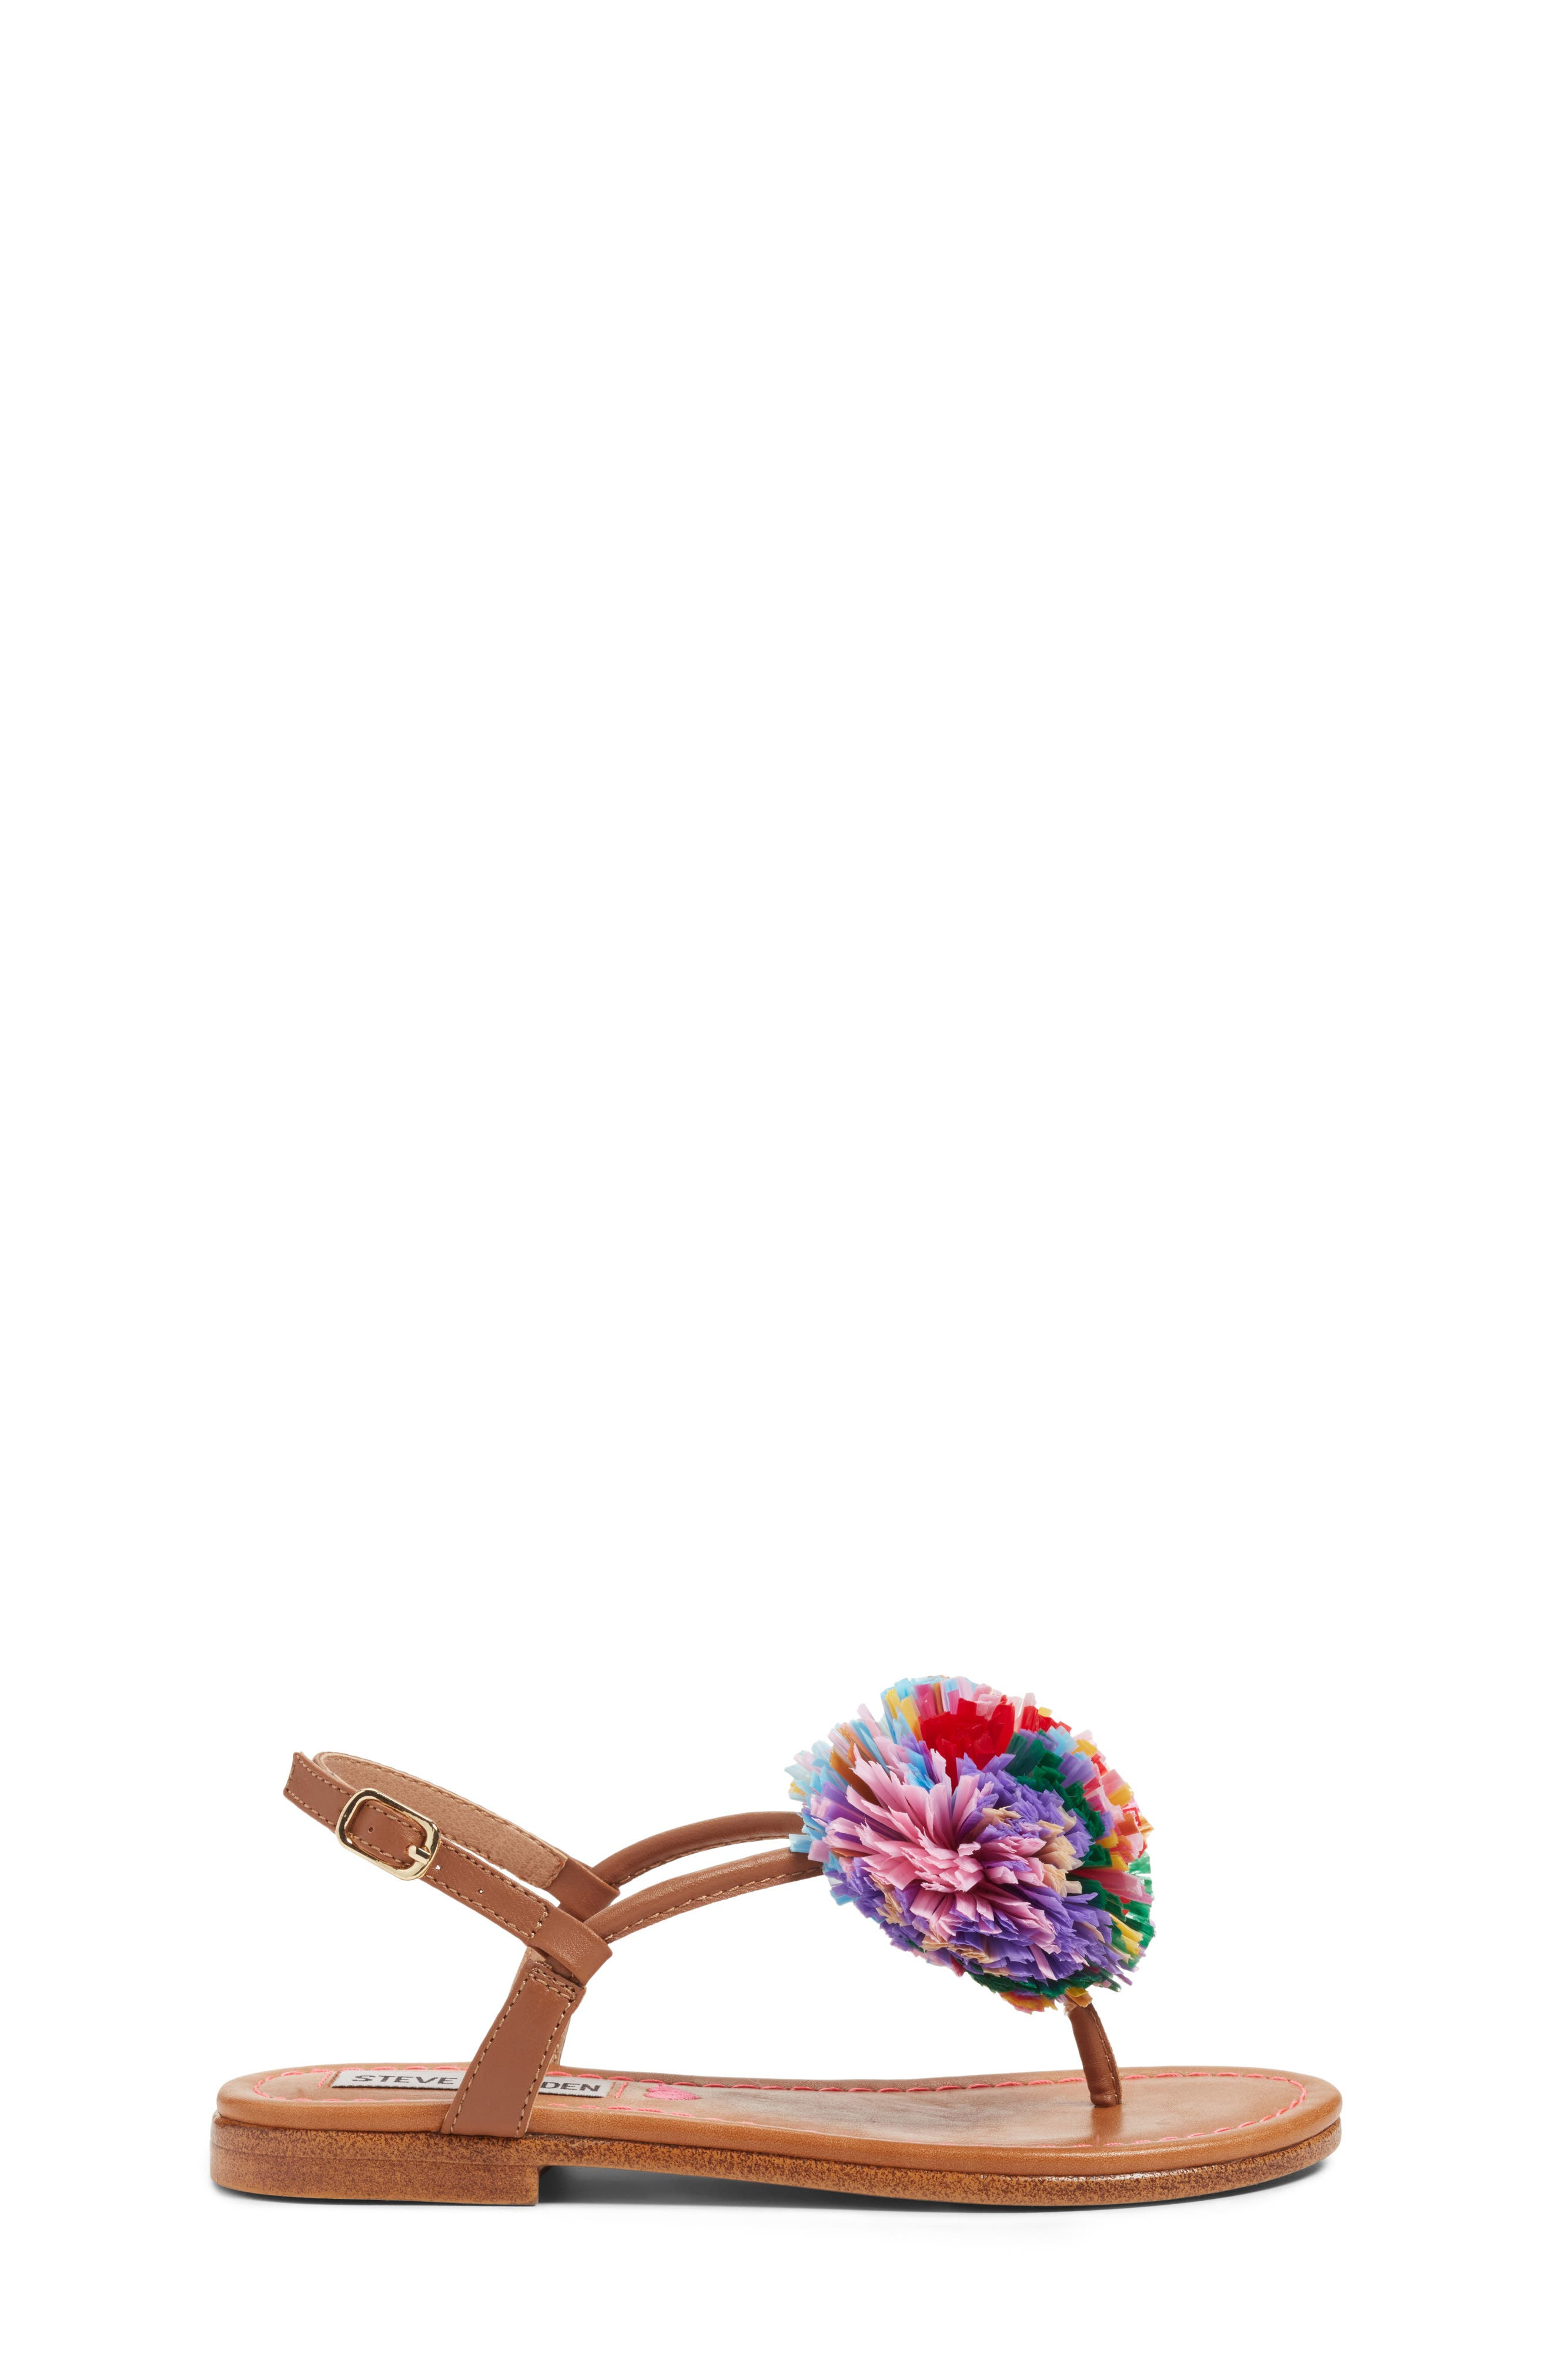 JCherry Pompom Sandal,                             Alternate thumbnail 3, color,